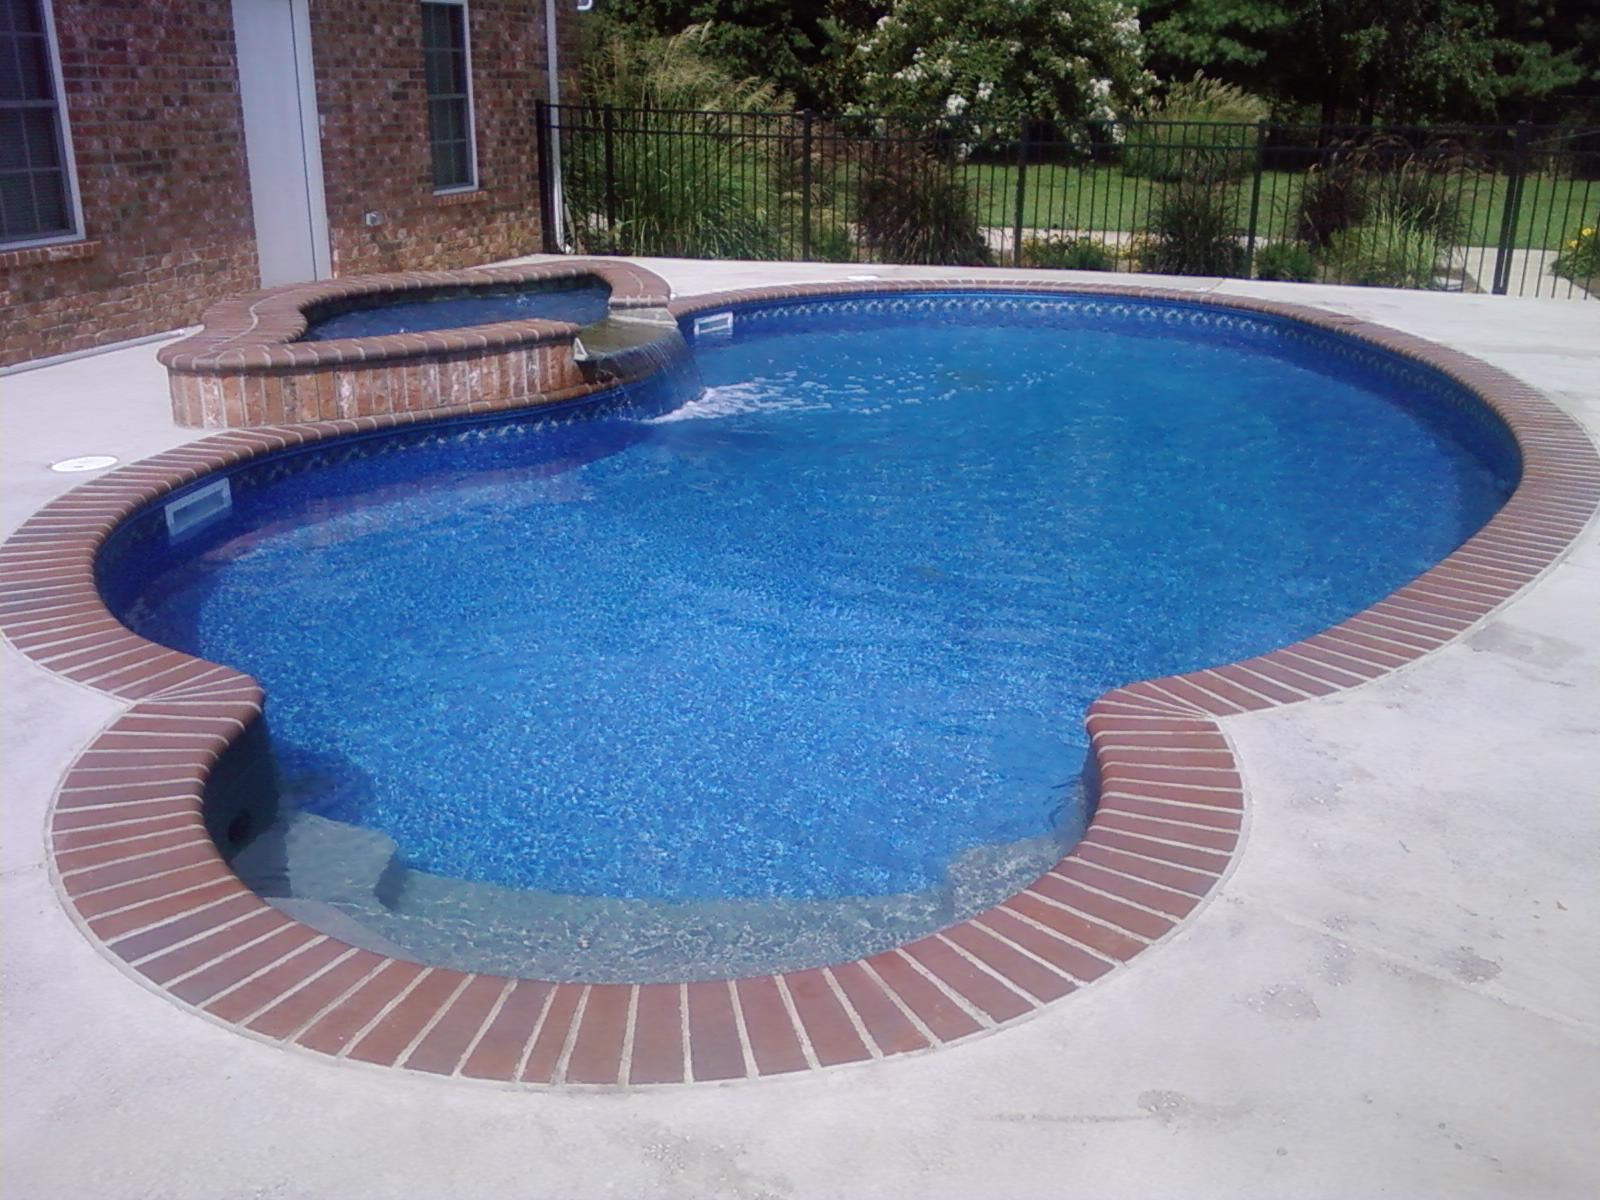 built by anderson pools and spas murfreesboro tn 14 x 28 kidney shape vinyl